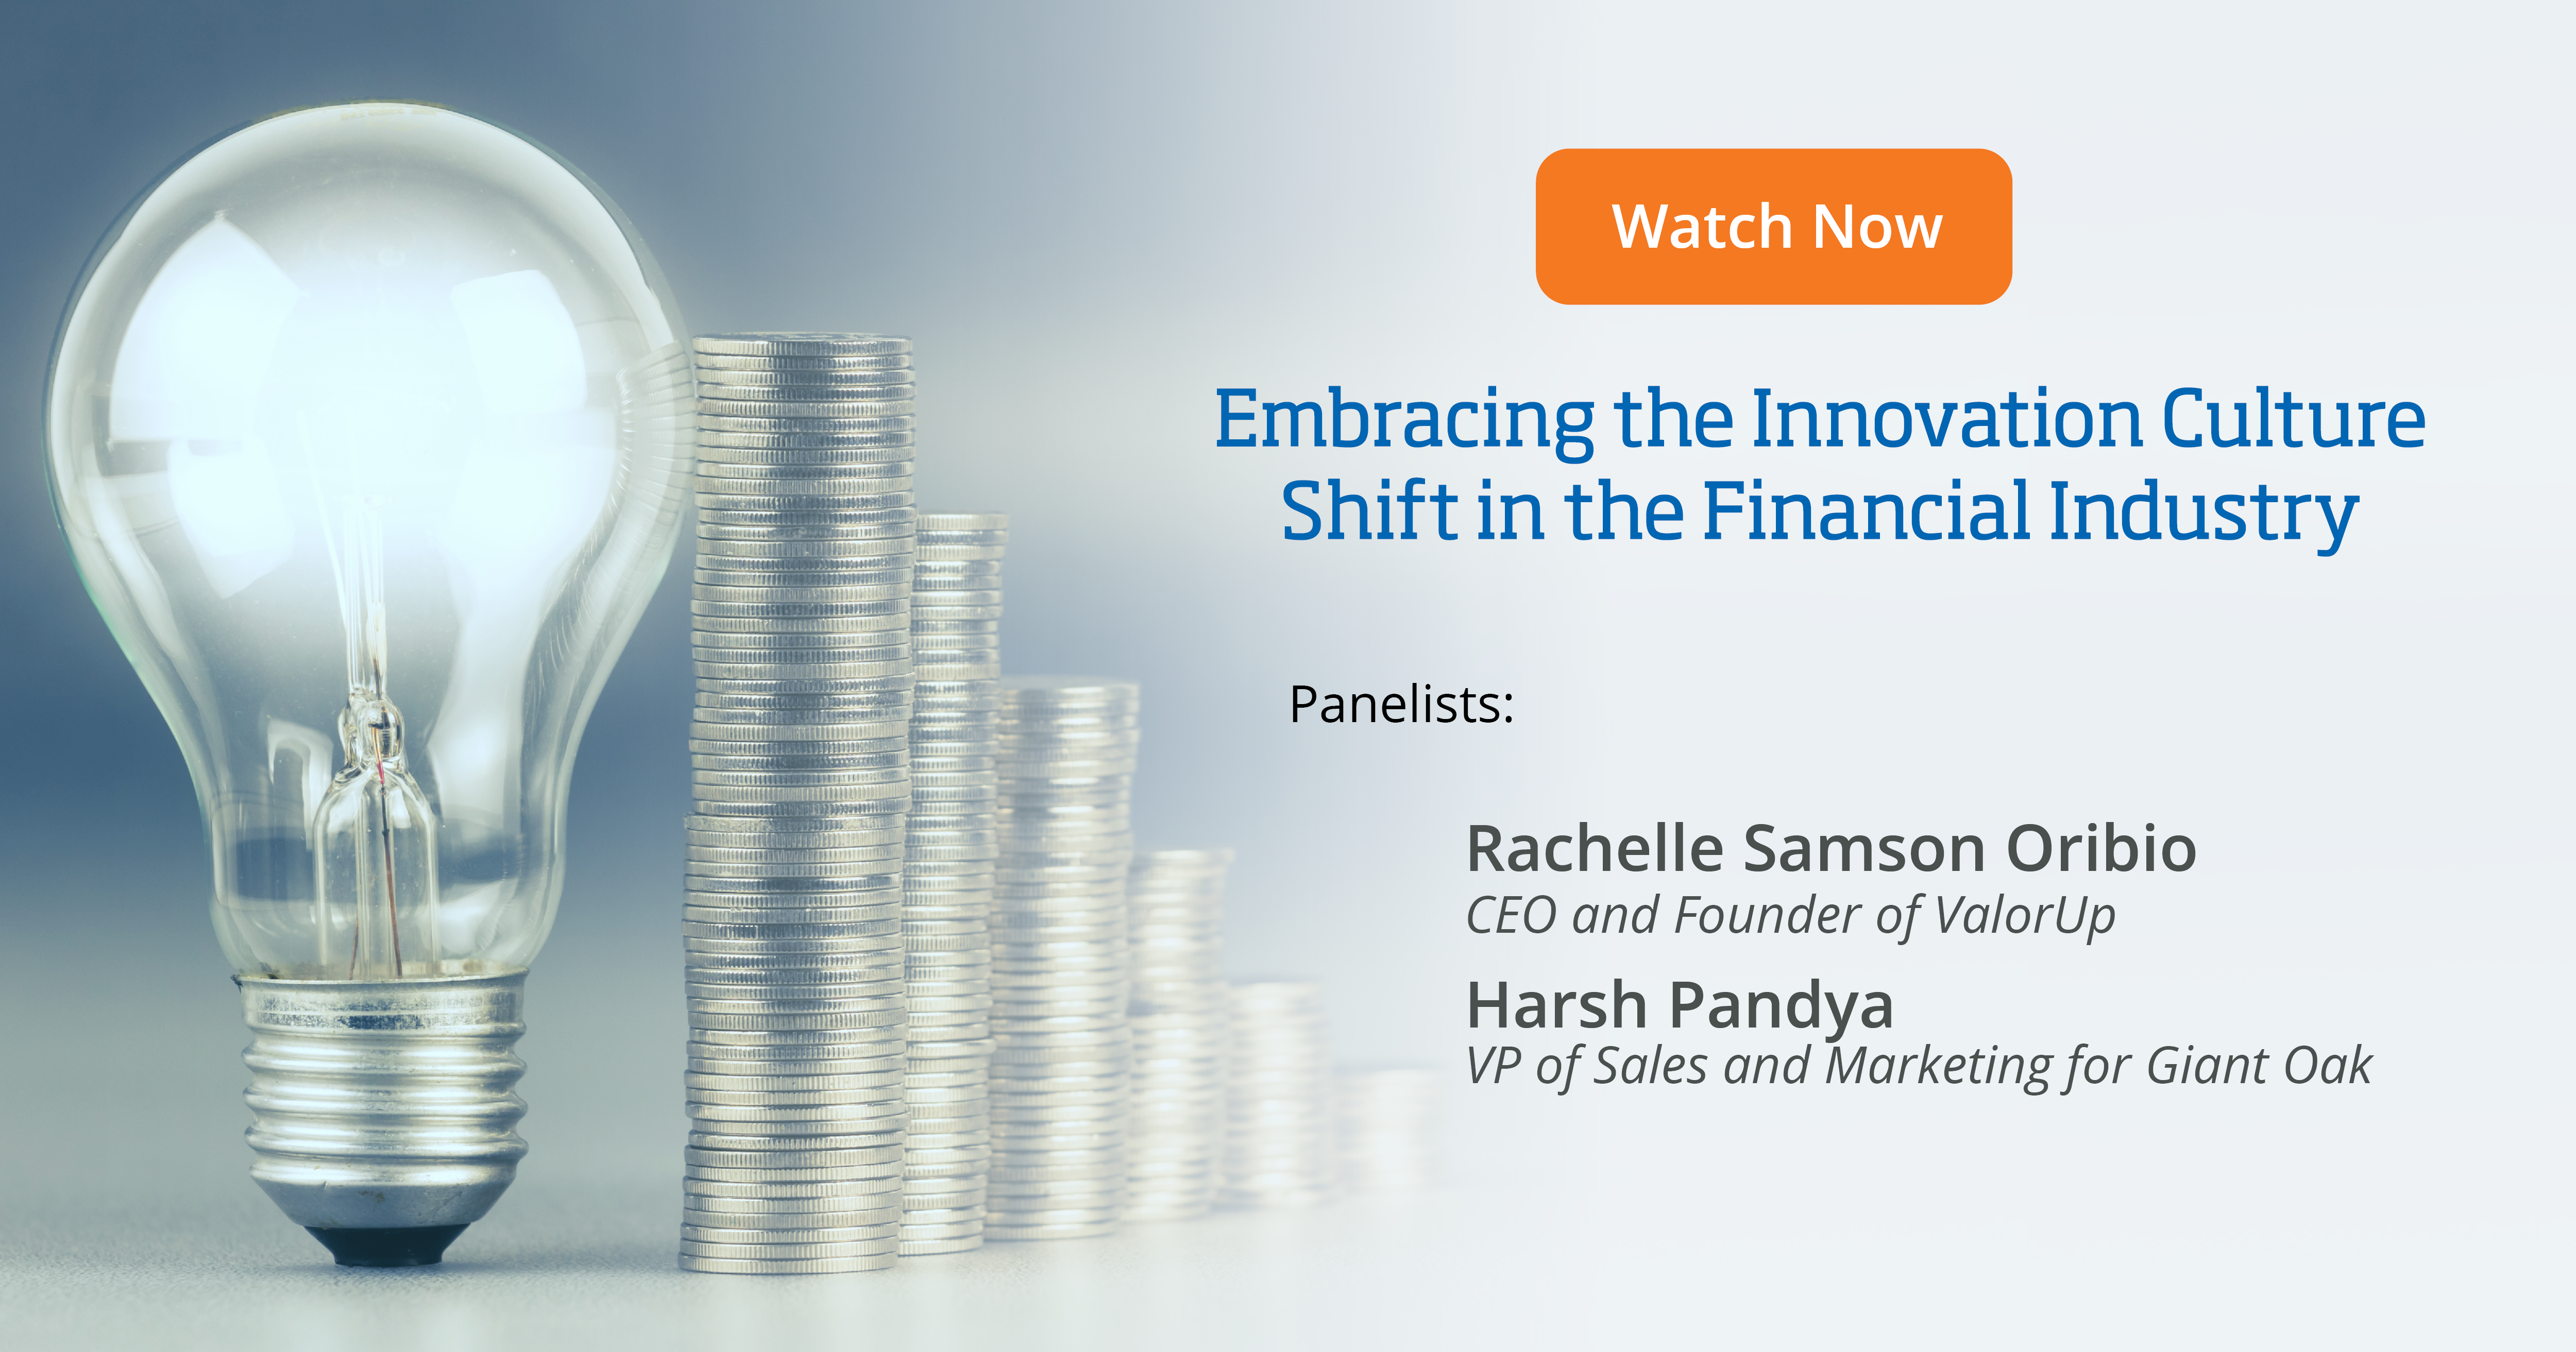 Embracing the Innovation Culture Shift in the Financial Industry-20201015 1902-1